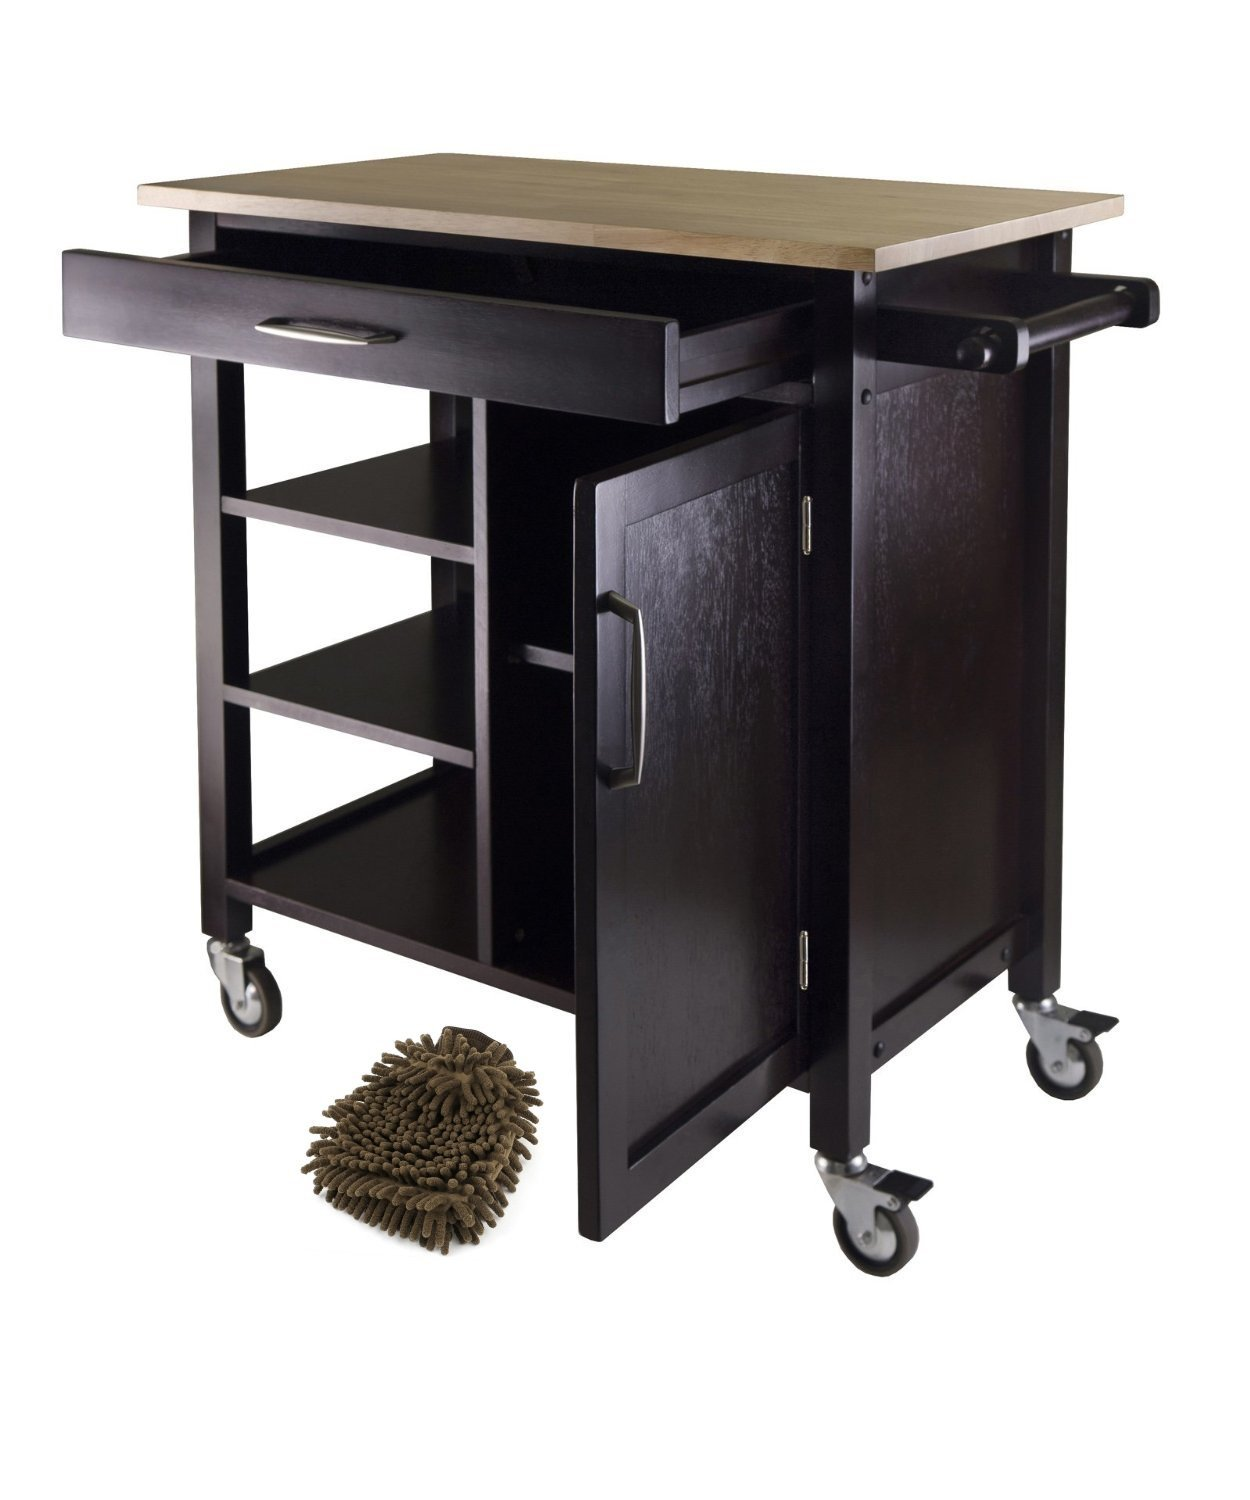 Winsome Mali Kitchen Cart Island (Complete Set) w/ Bonus Premium Microfiber Cleaner Bundle